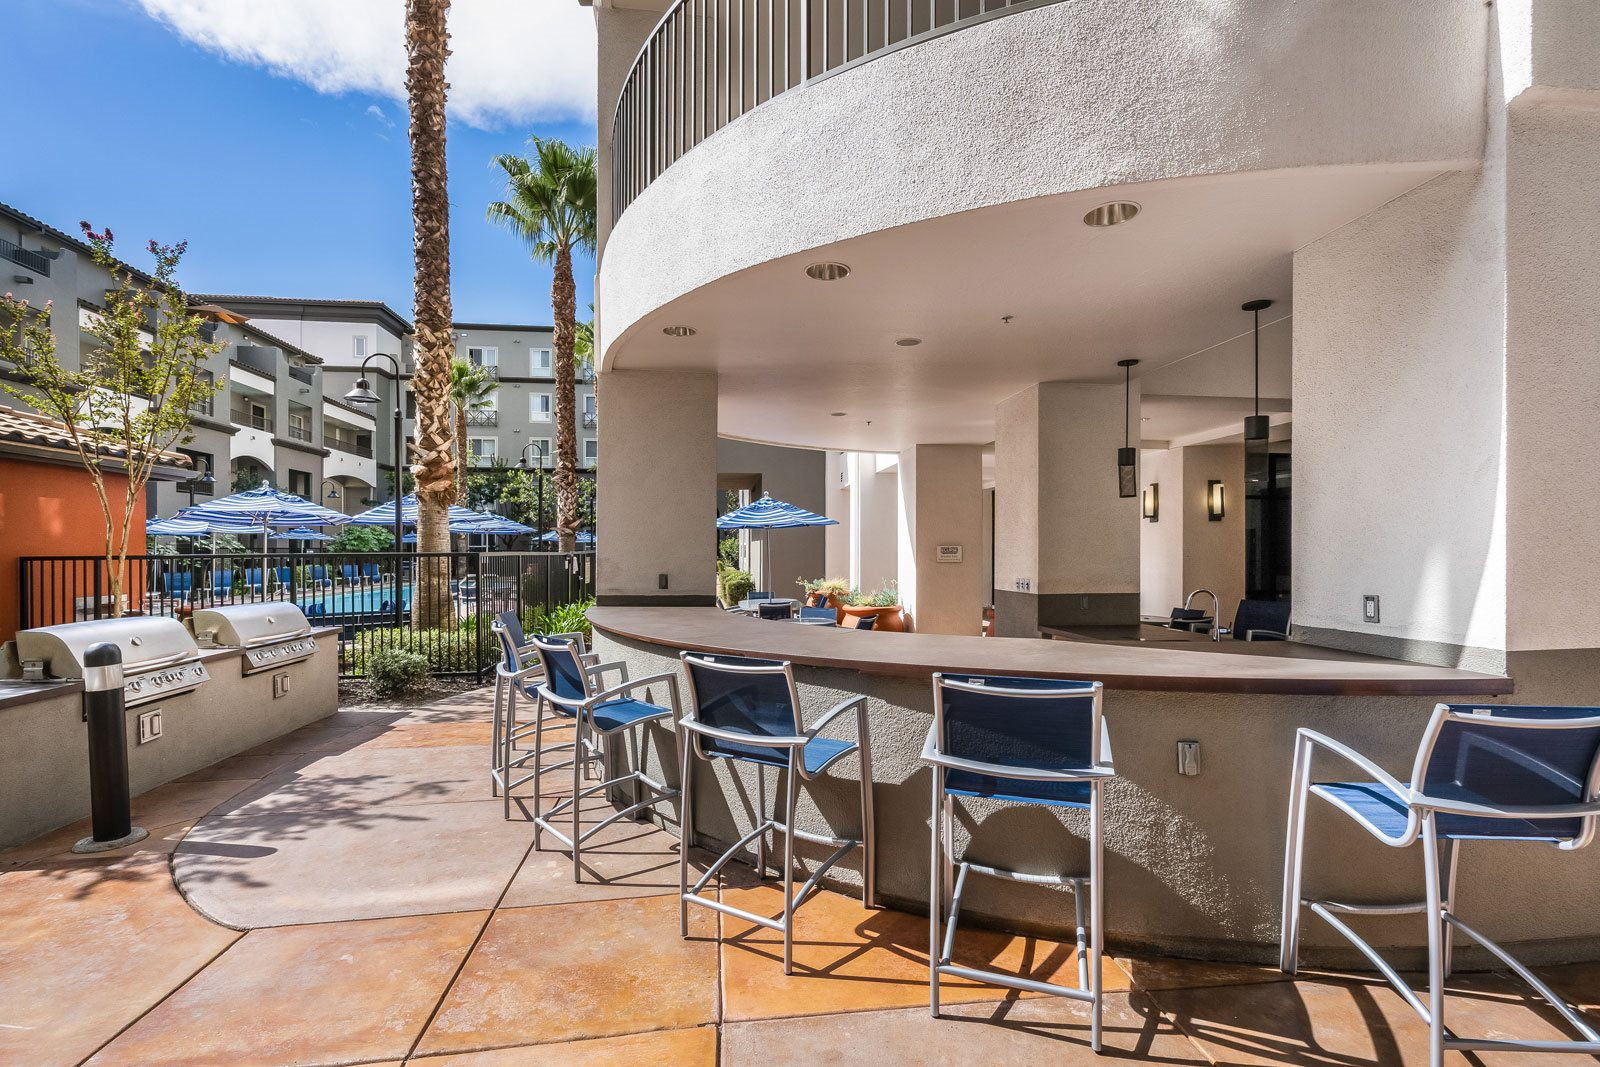 Outdoor Bar and Grilling Station at Dublin Station by Windsor, 5300 Iron Horse Pkwy, CA